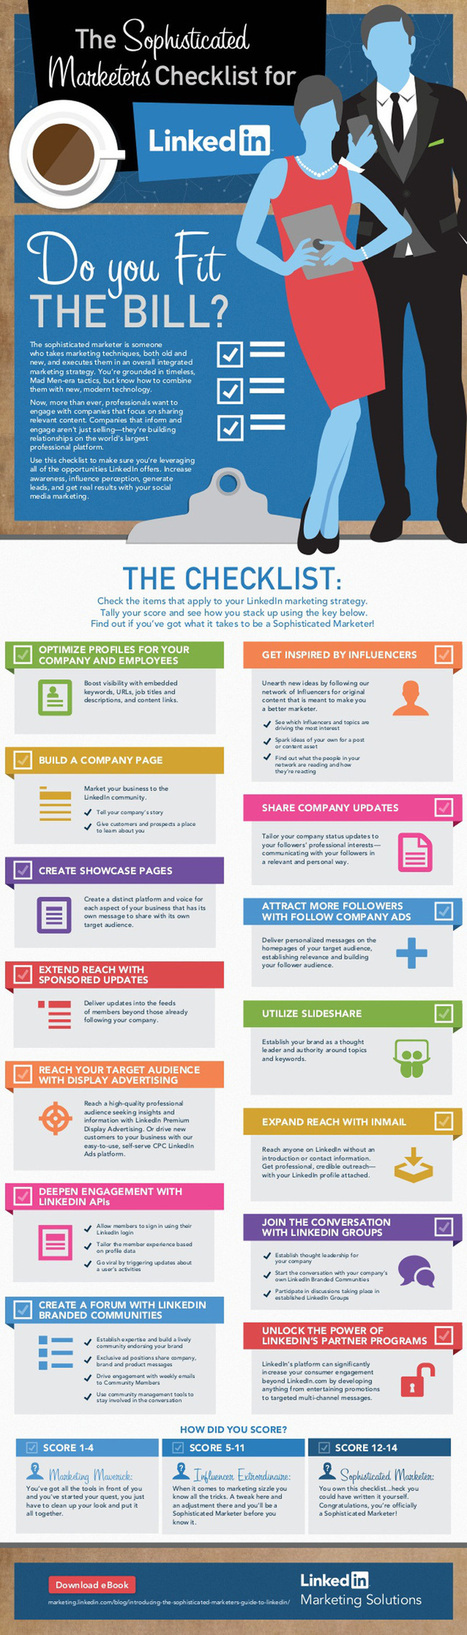 The Sophisticated Marketer's Guide to LinkedIn, an infographic | Social Media Marketing Solutions for B2B | Scoop.it